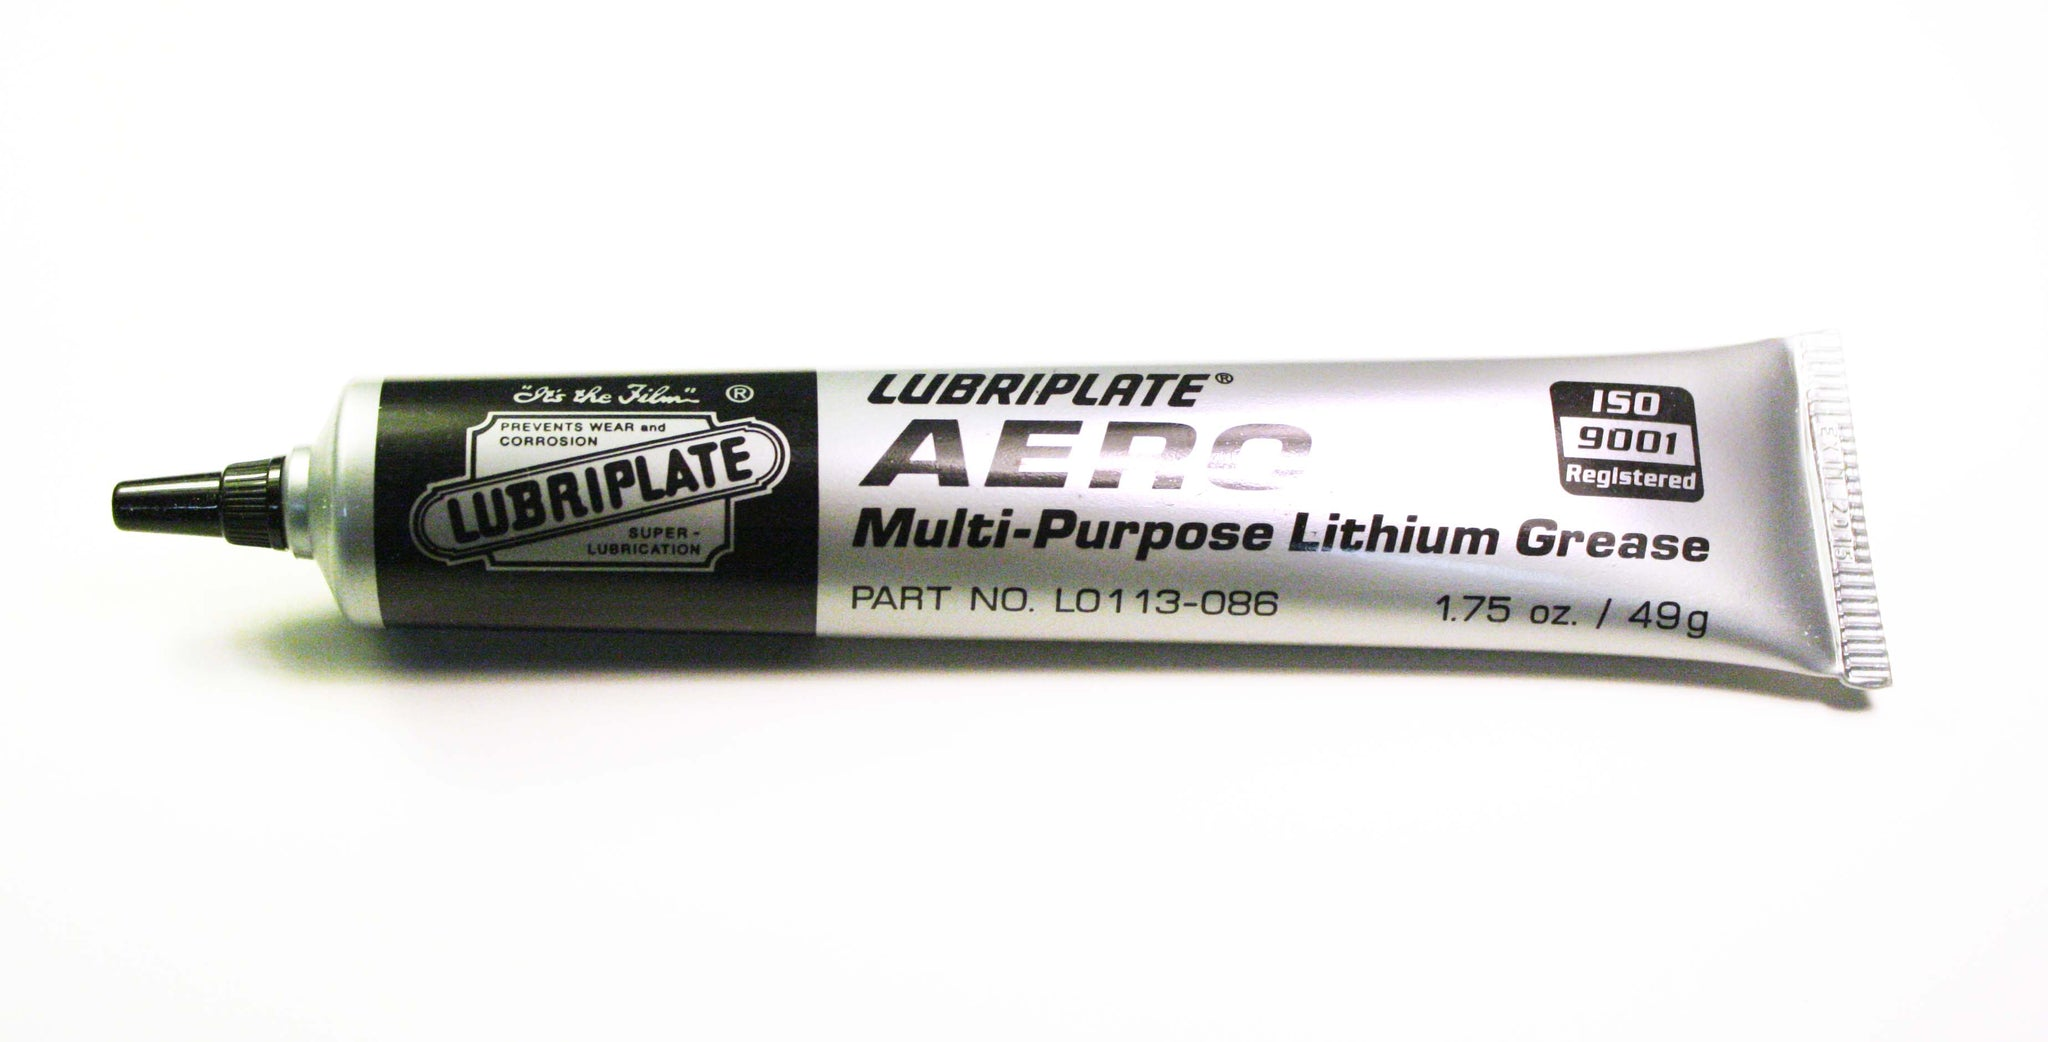 Lubriplate Grease